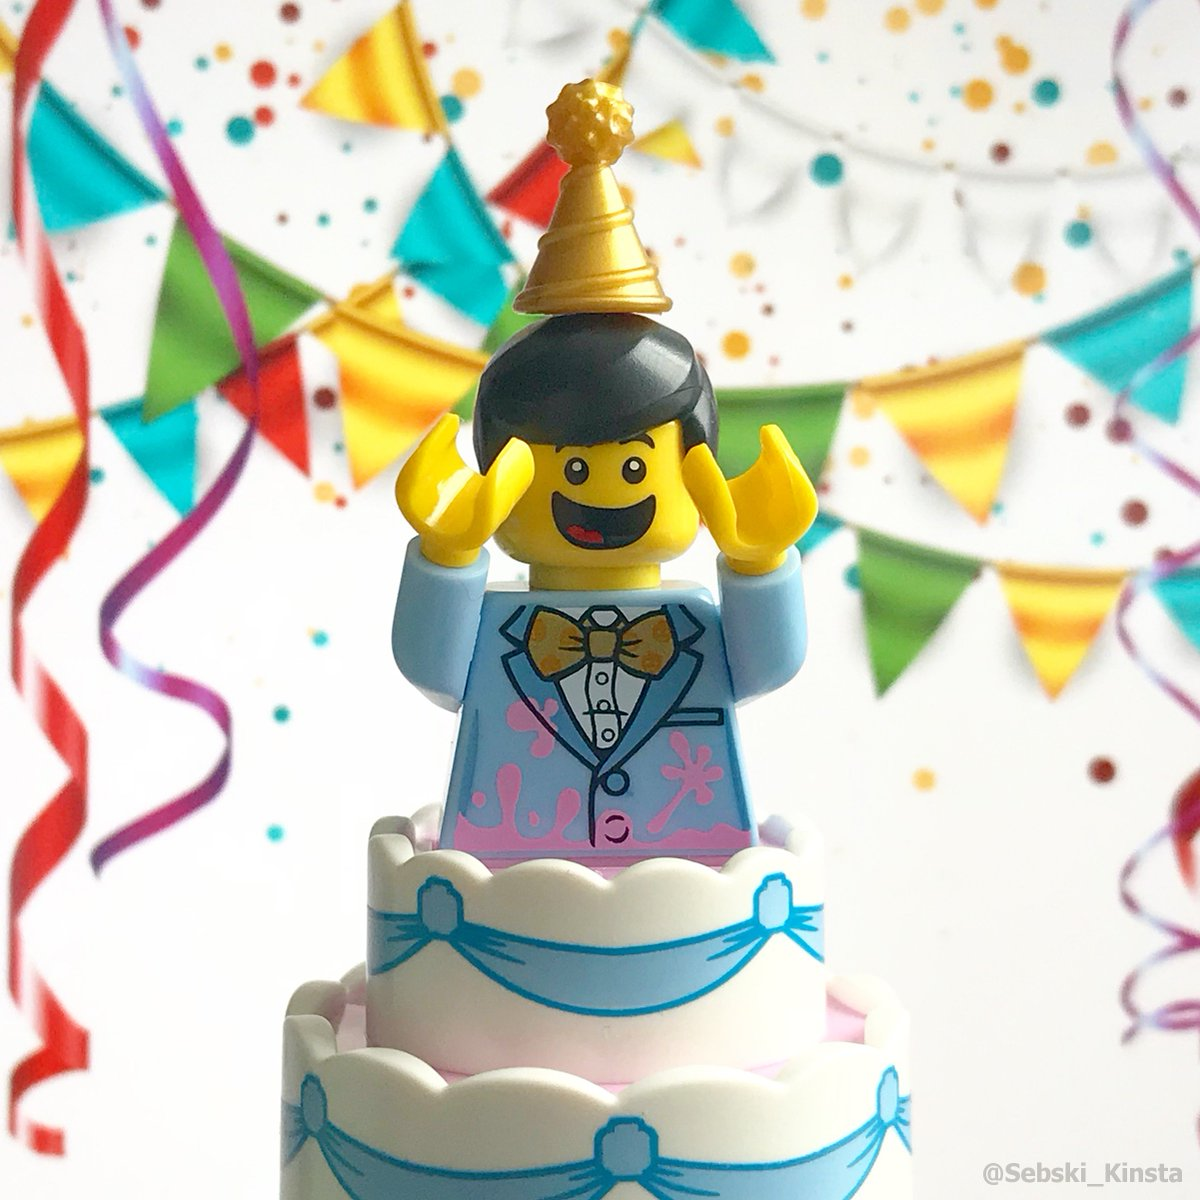 Birthday Surprise Lego Minifigures Cake For More Of My Photos Tco GfPD67kqyJ FHACQerwHf